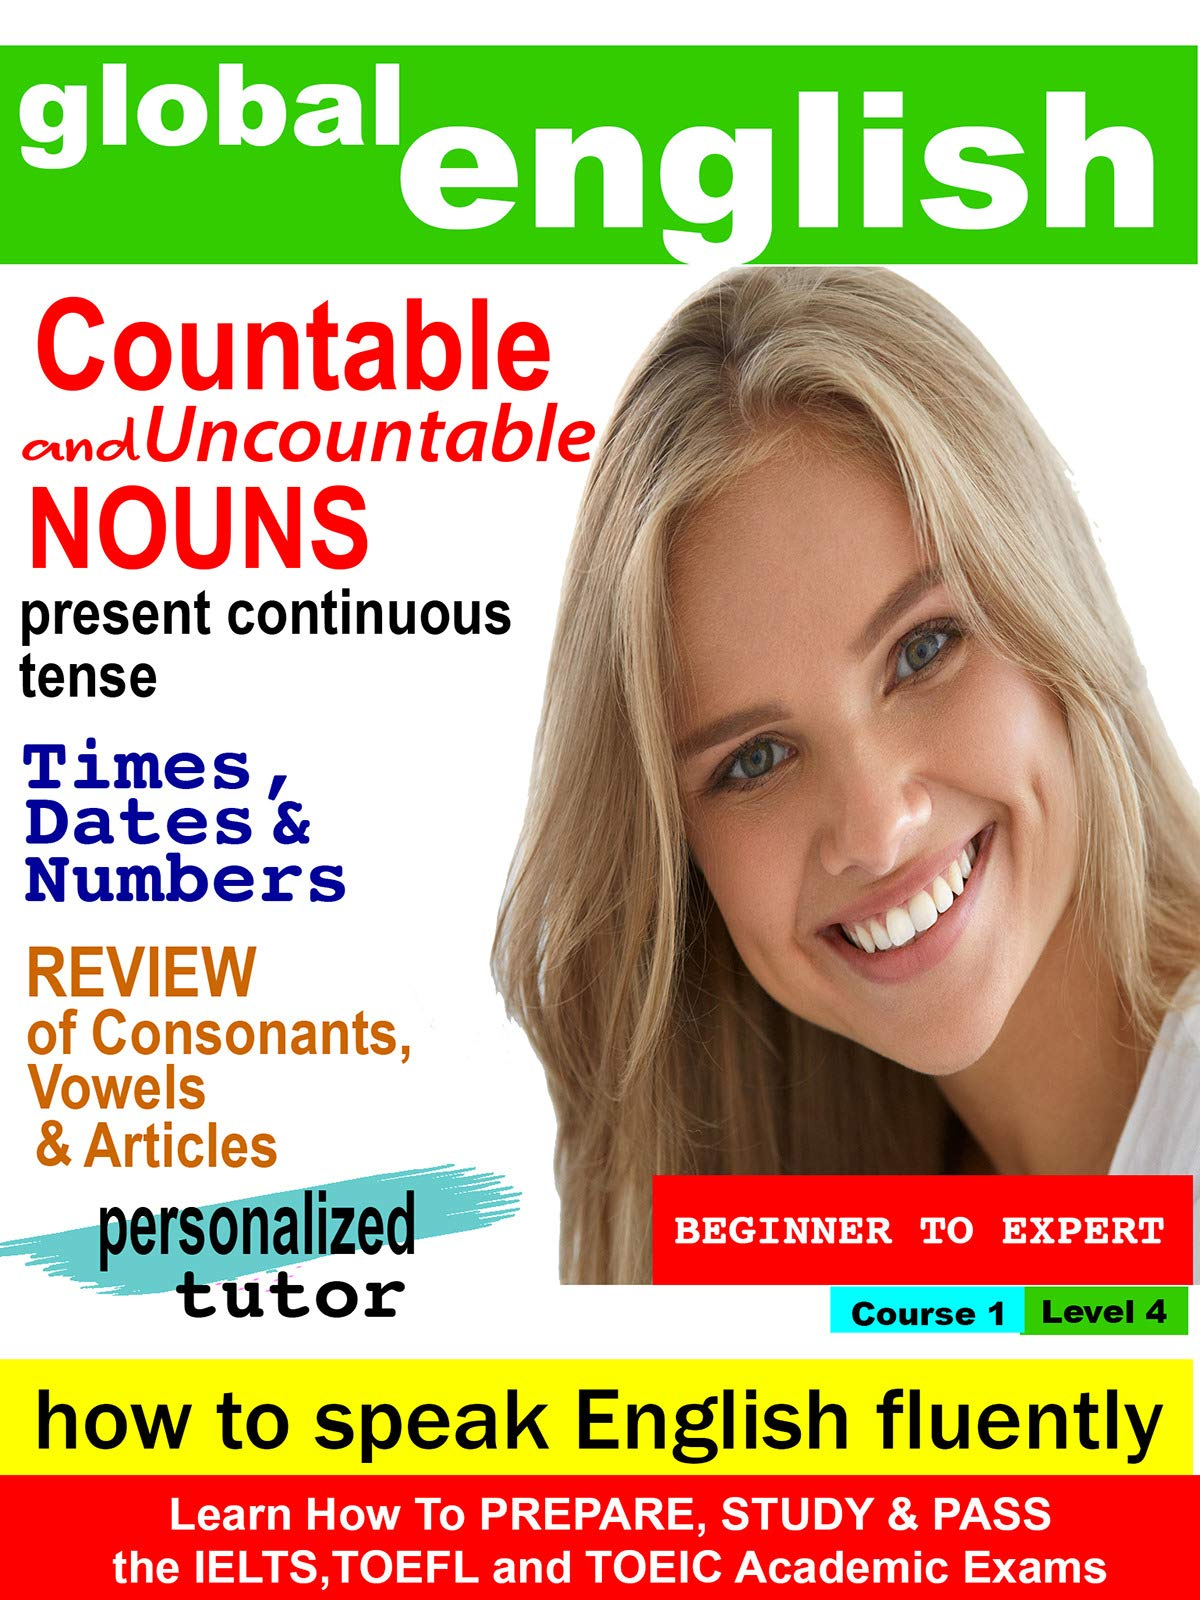 Global English How to Speak English Fluently - Countable and Uncountable Nouns